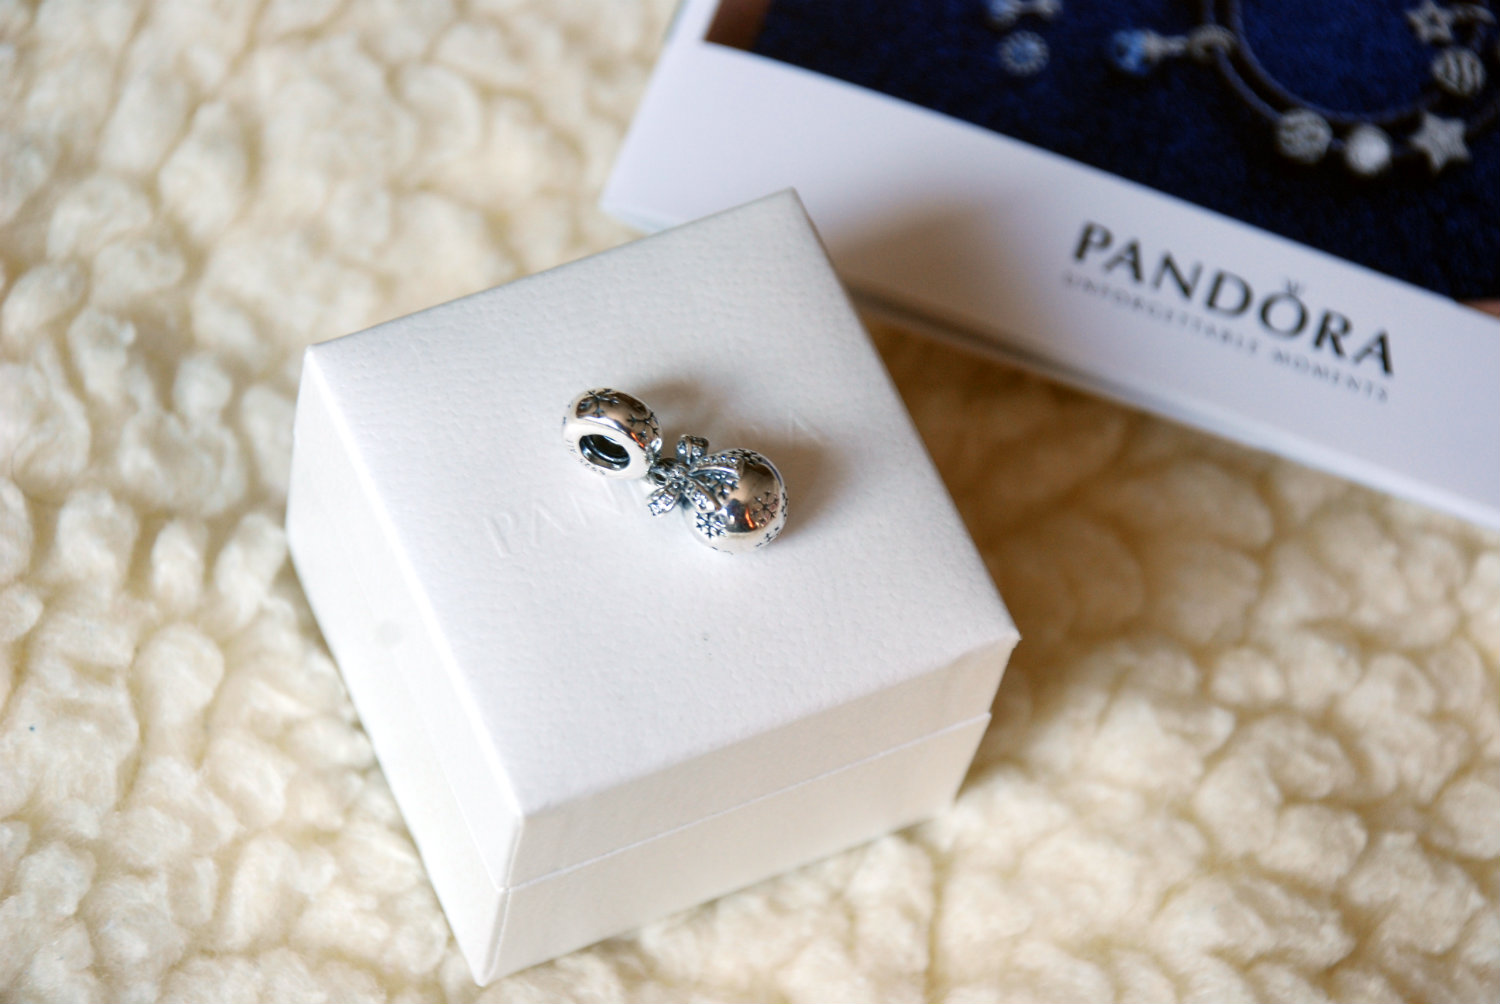 Pandora Christmas Ornament charm